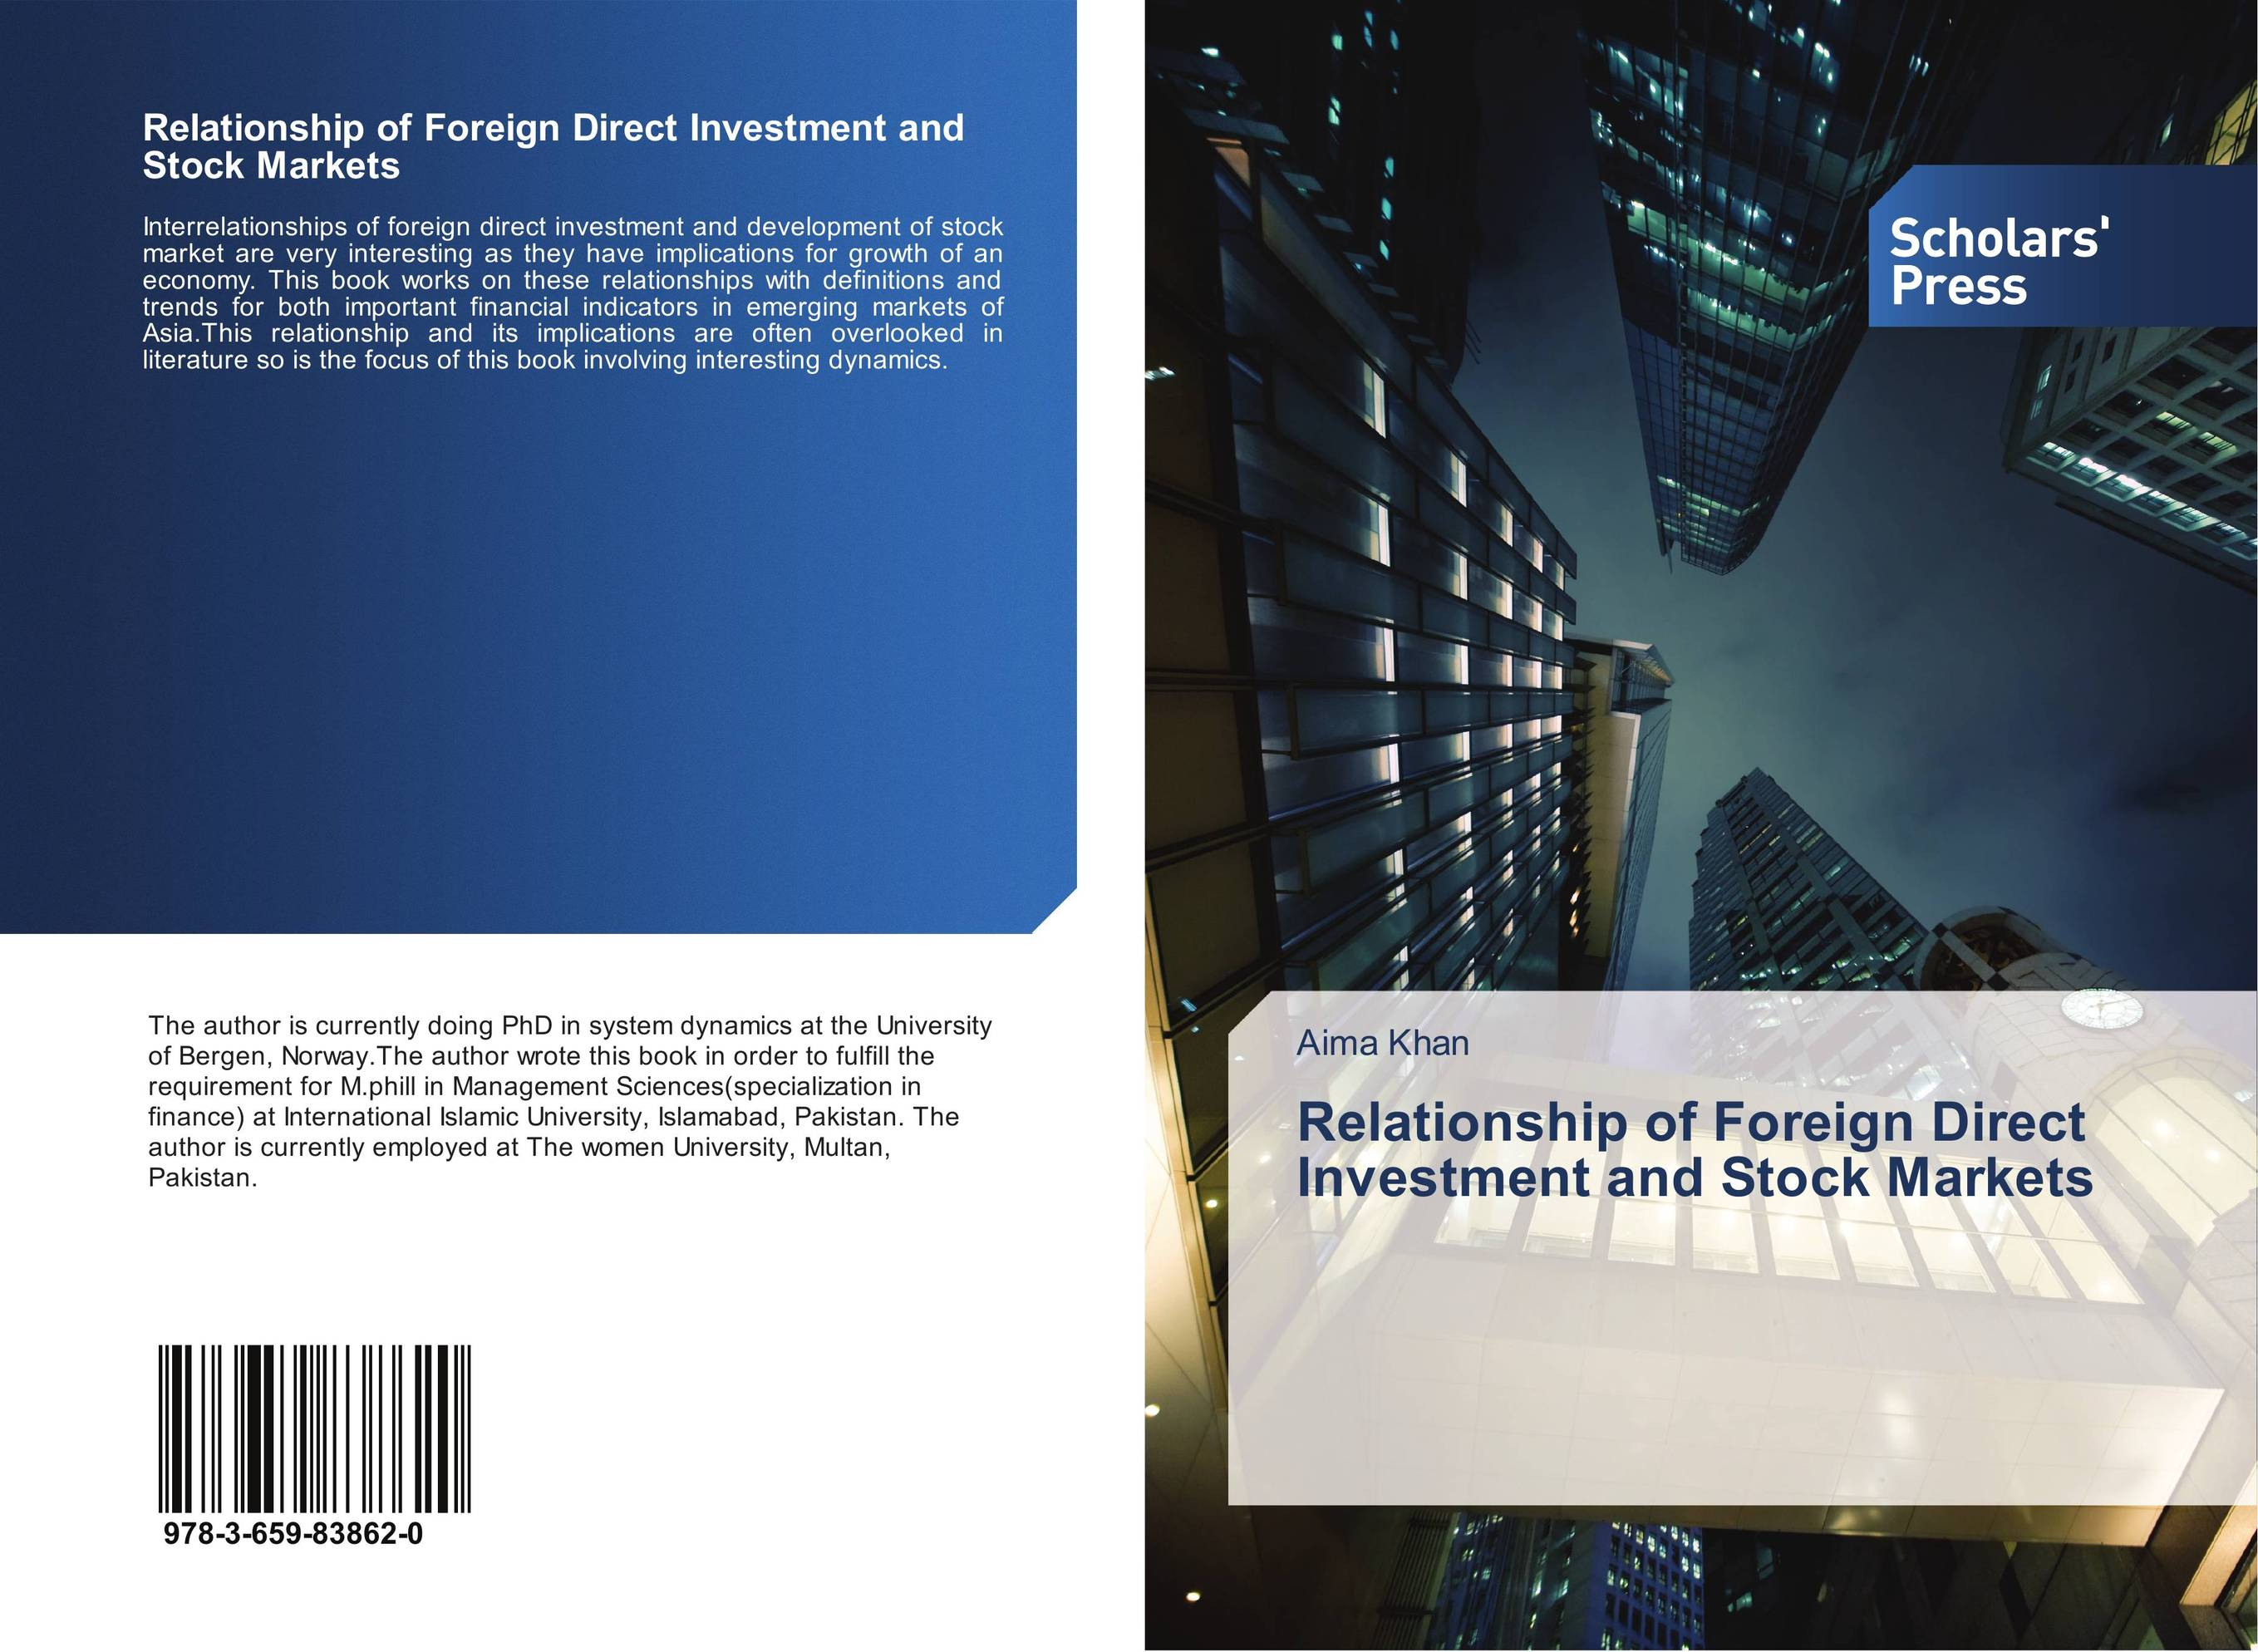 Relationship of Foreign Direct Investment and Stock Markets relationship of foreign direct investment and stock markets